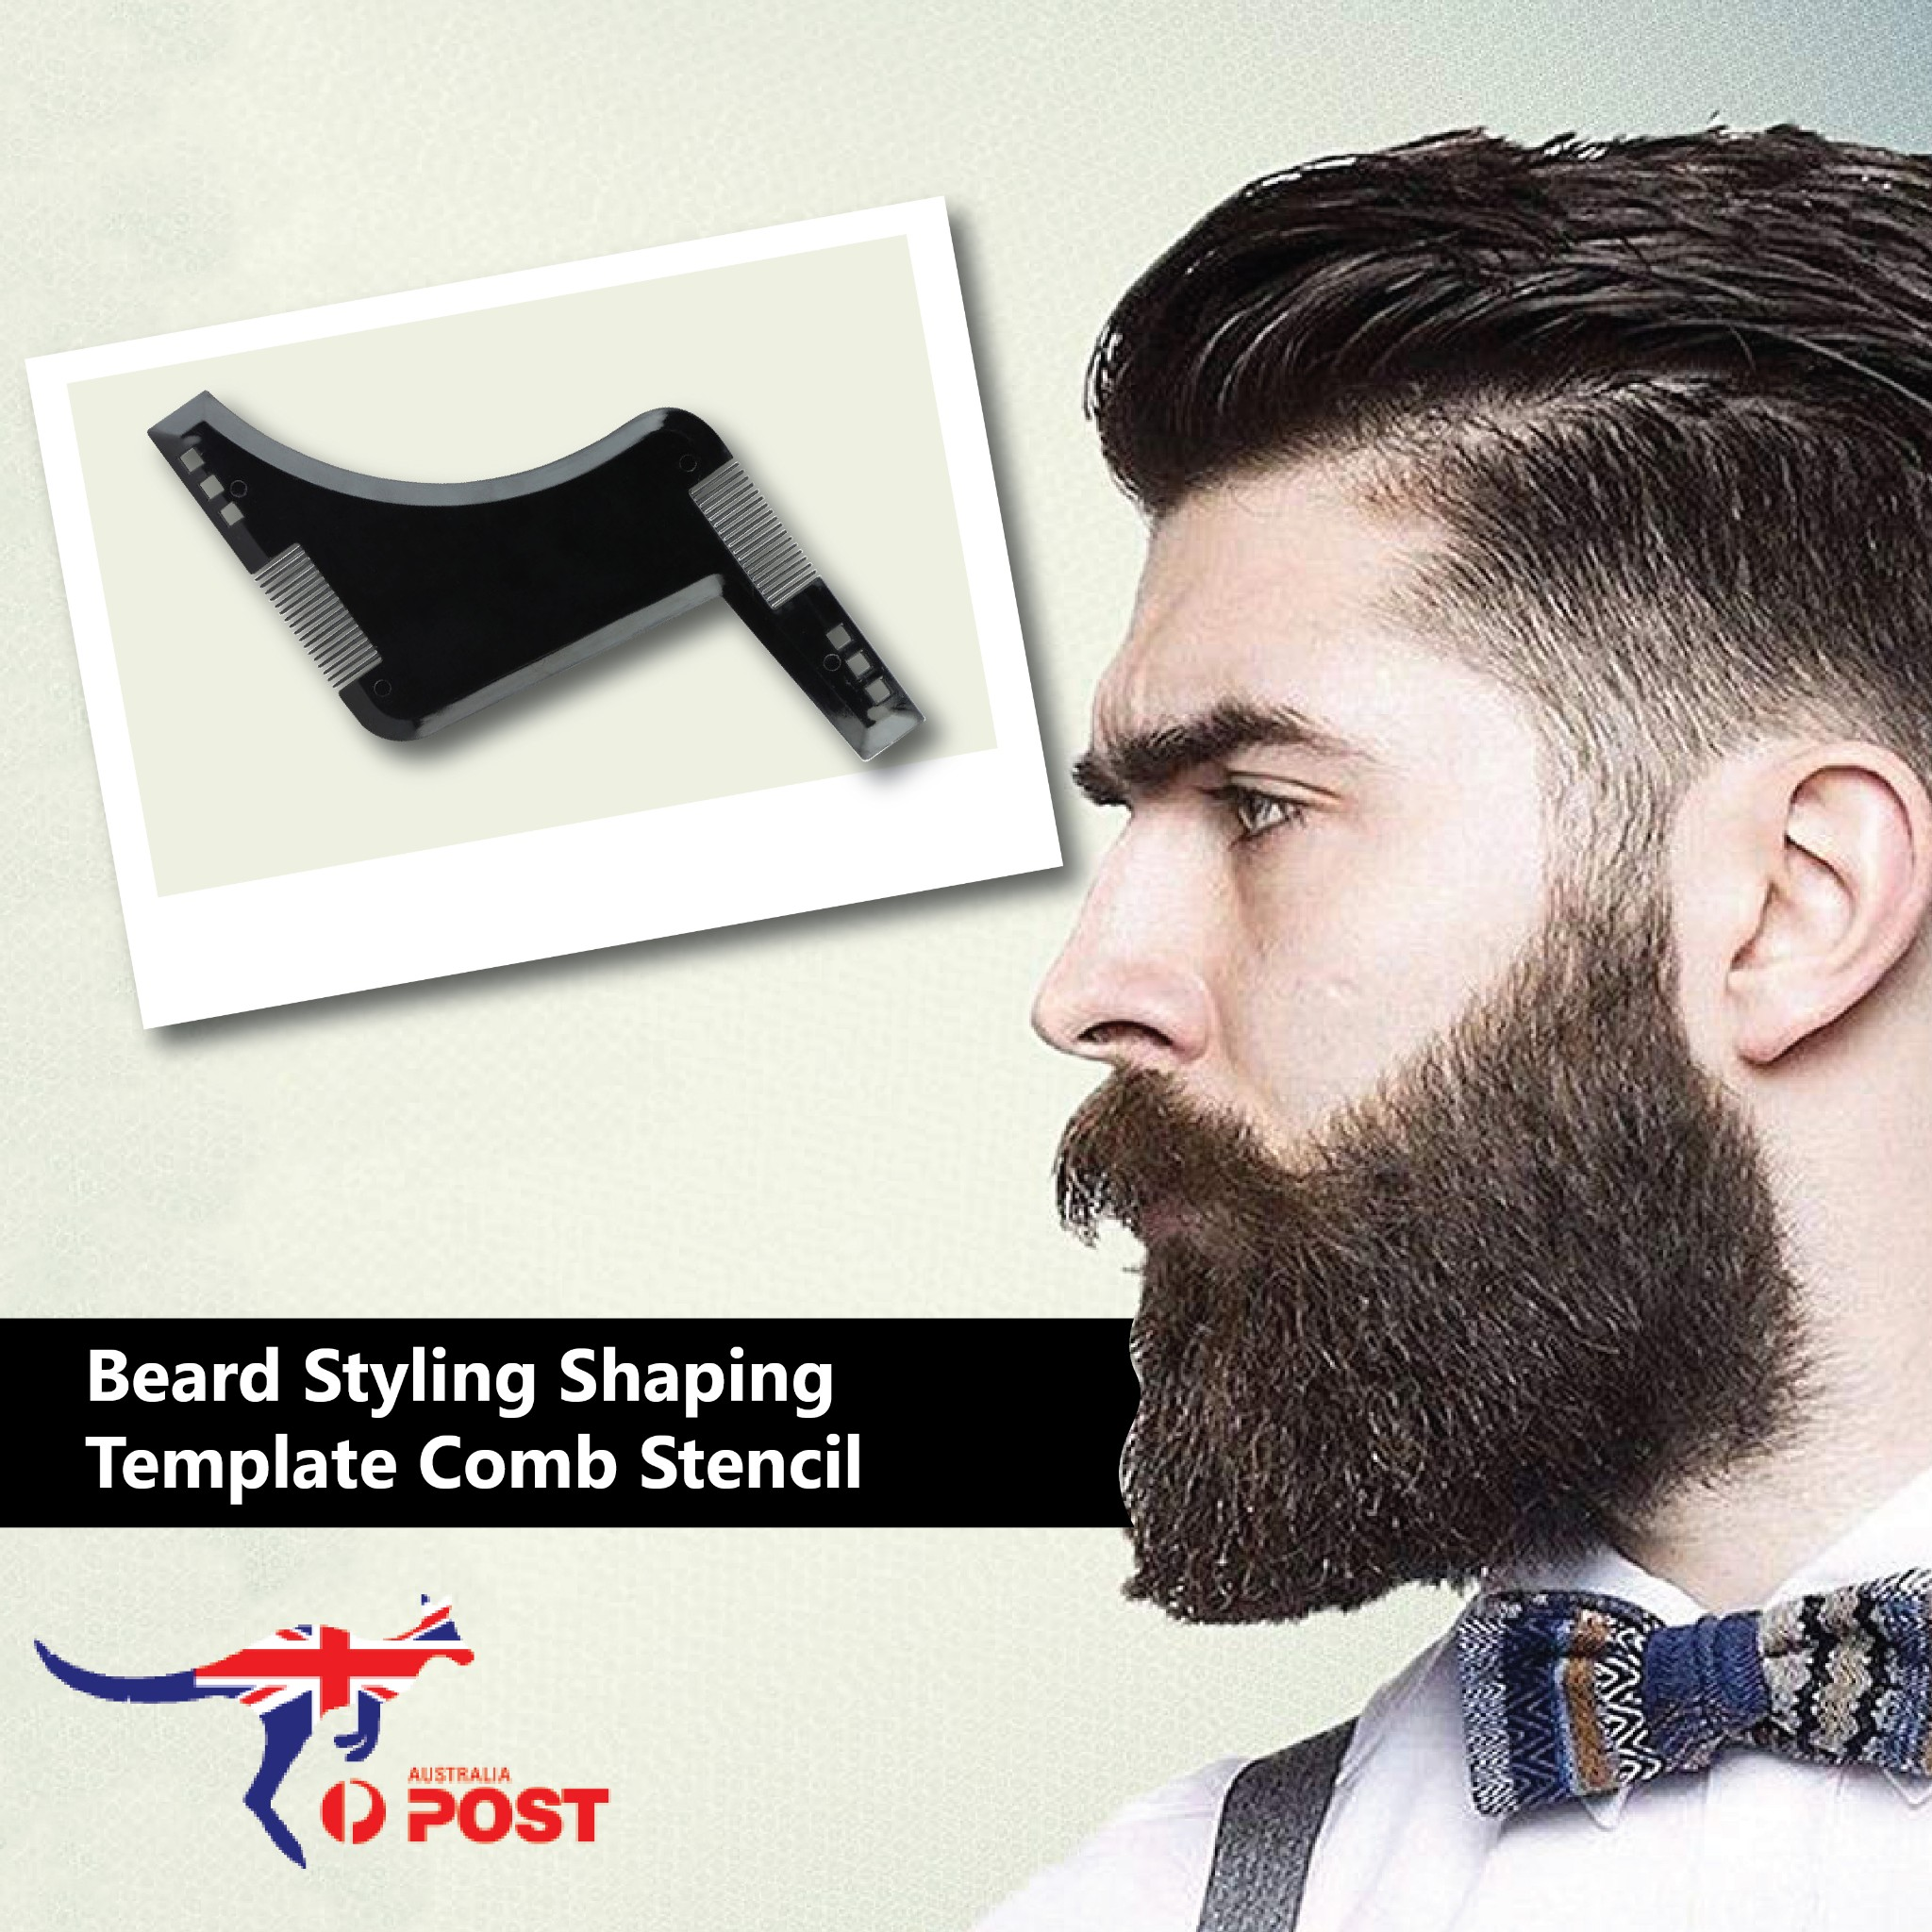 Wondrous Beard Styling Shaping Template Comb Tool Symmetry Trimming Shaper Natural Hairstyles Runnerswayorg